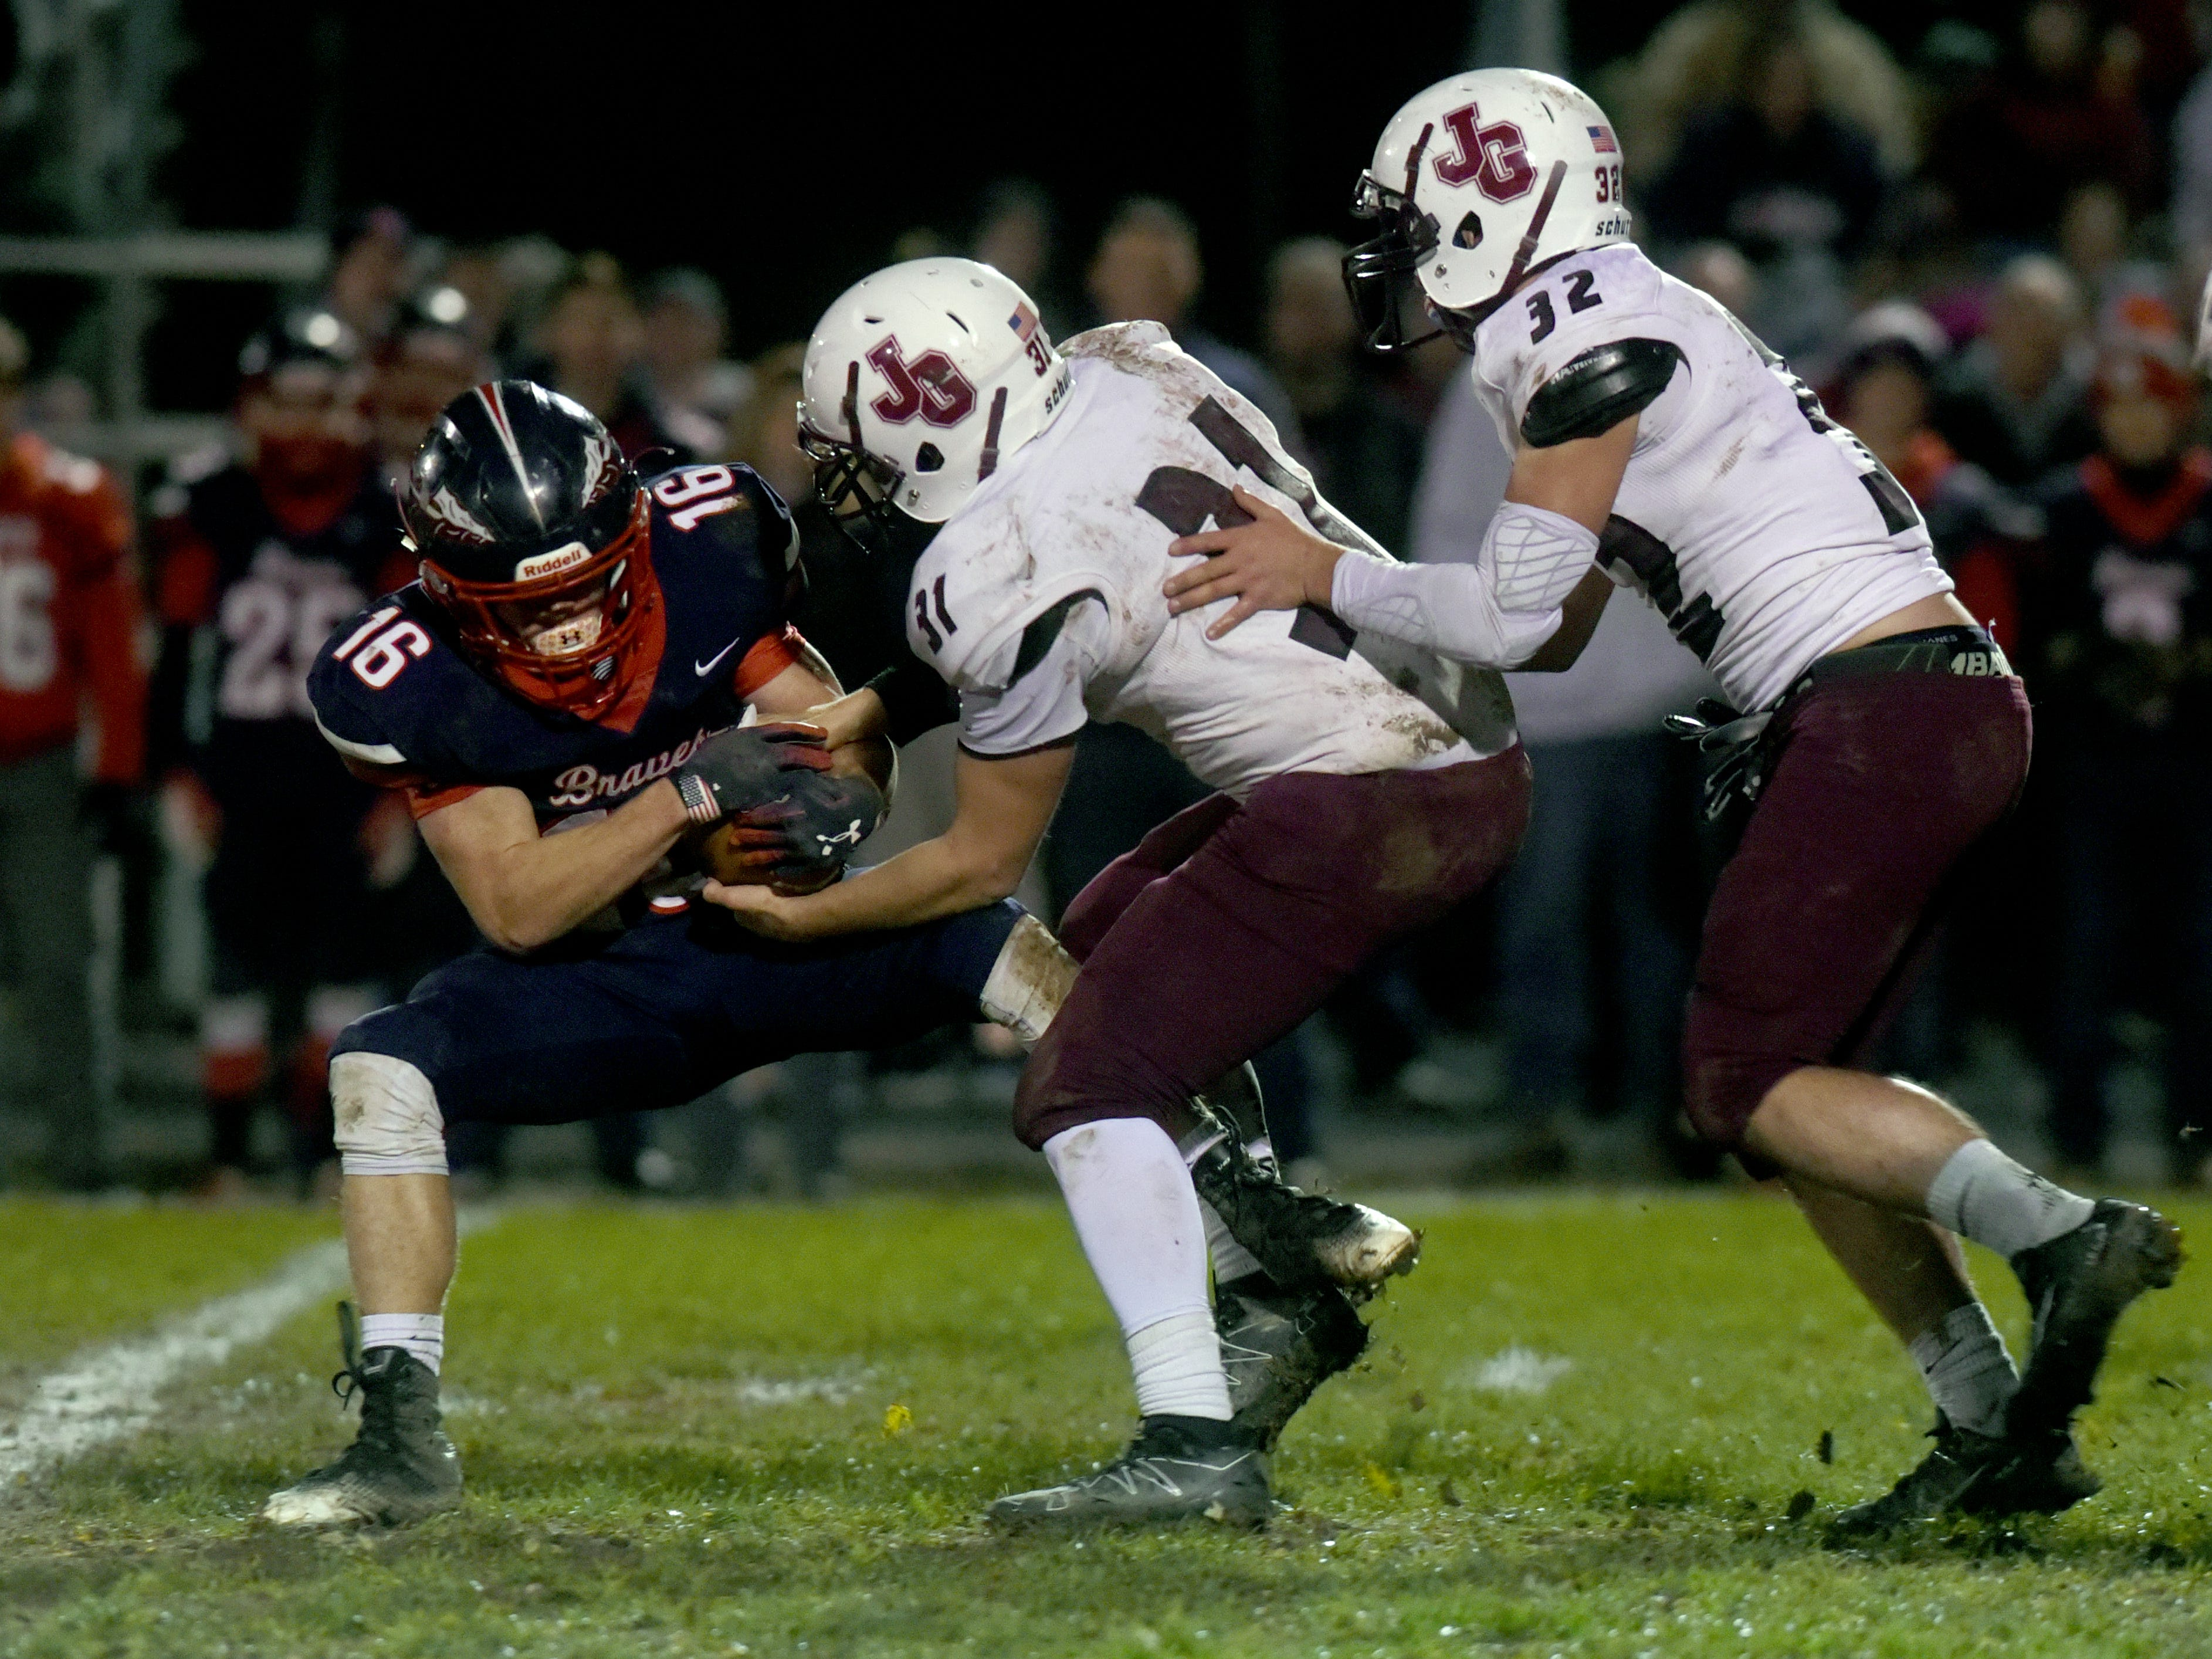 Josh Conner, of John Glenn, tries to take the ball from Indian Valley's Caden Hostetler during a 16-14 playoff loss on Saturday night.